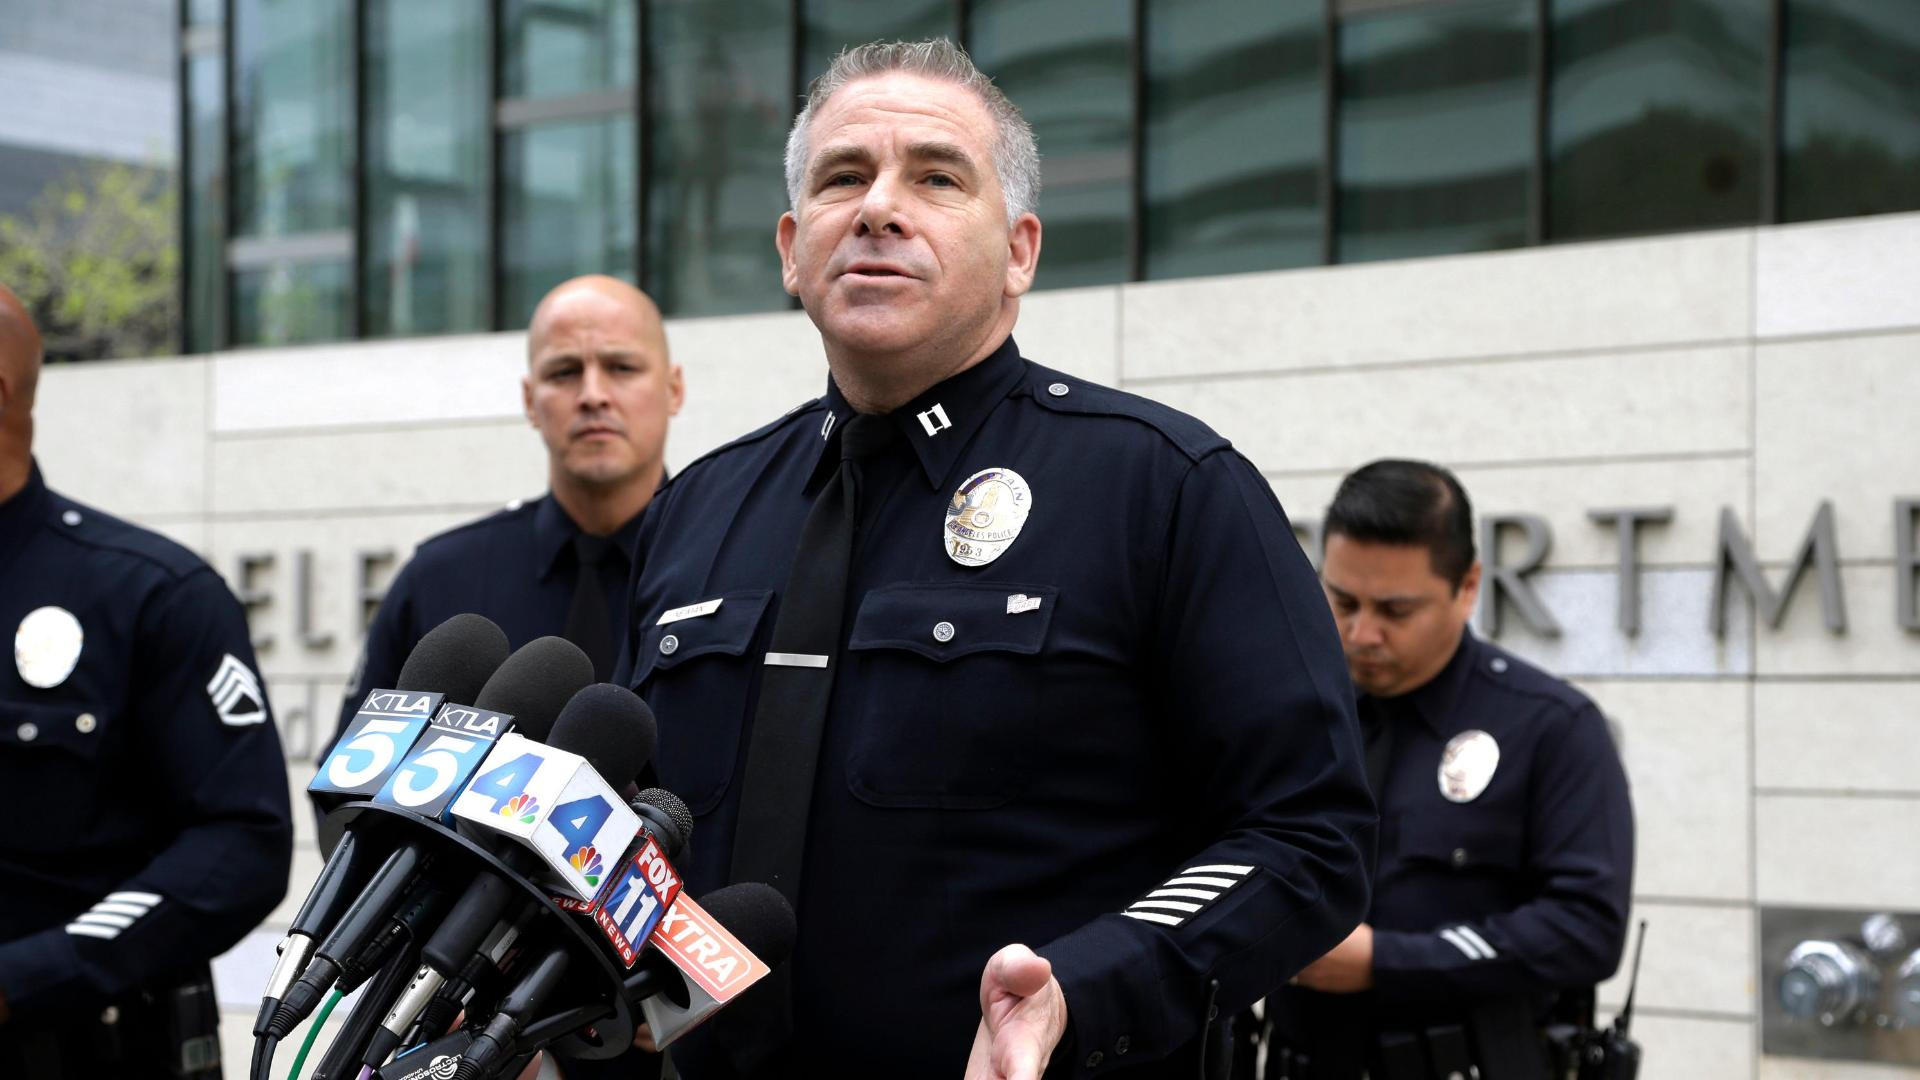 http://a.espncdn.com/media/motion/2016/0304/dm_160304_news_lapd_simpson_sot1100/dm_160304_news_lapd_simpson_sot1100.jpg